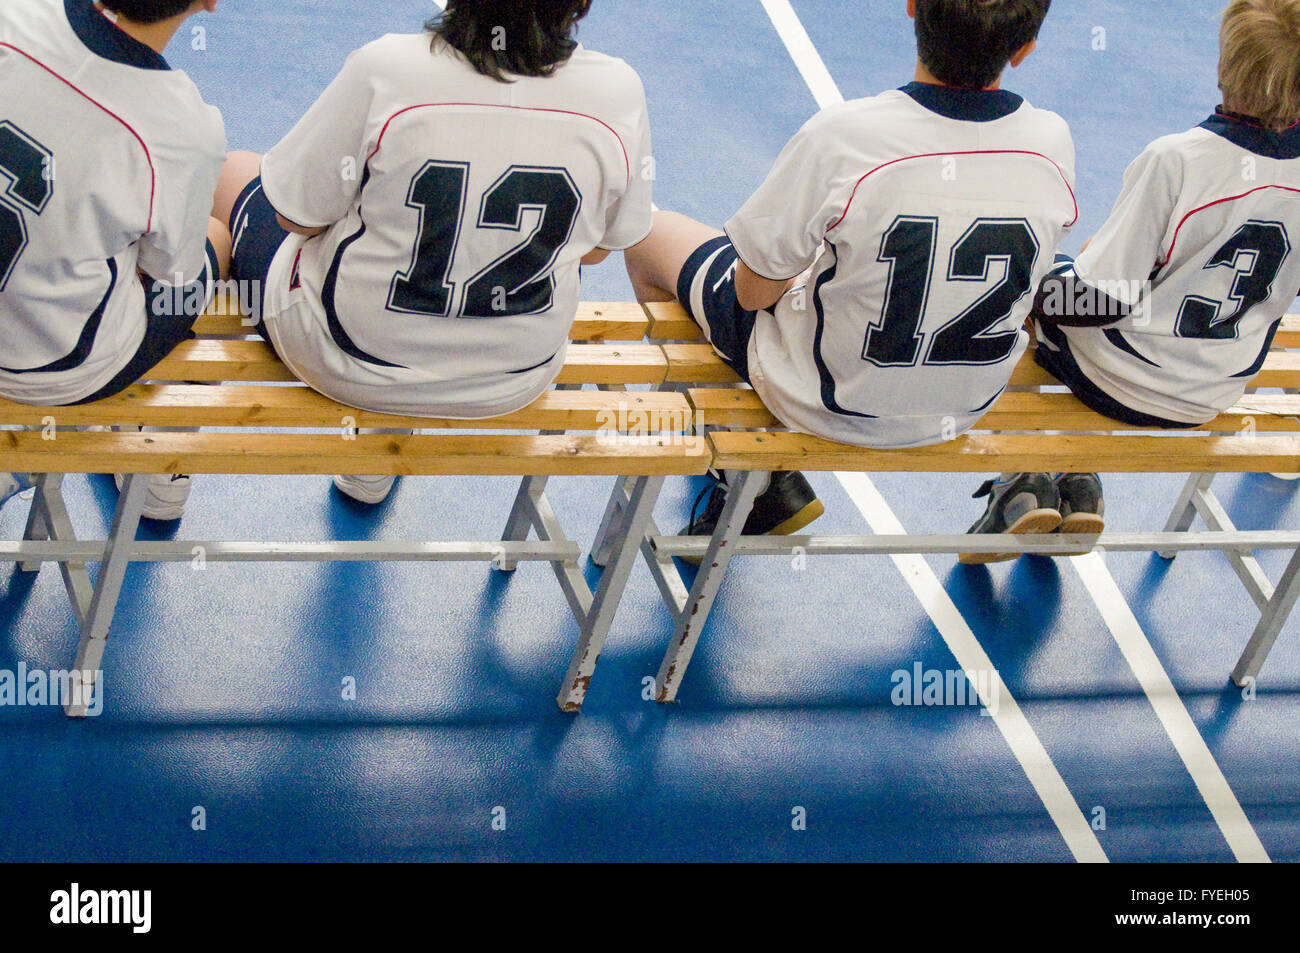 bench with young athletes - Stock Image